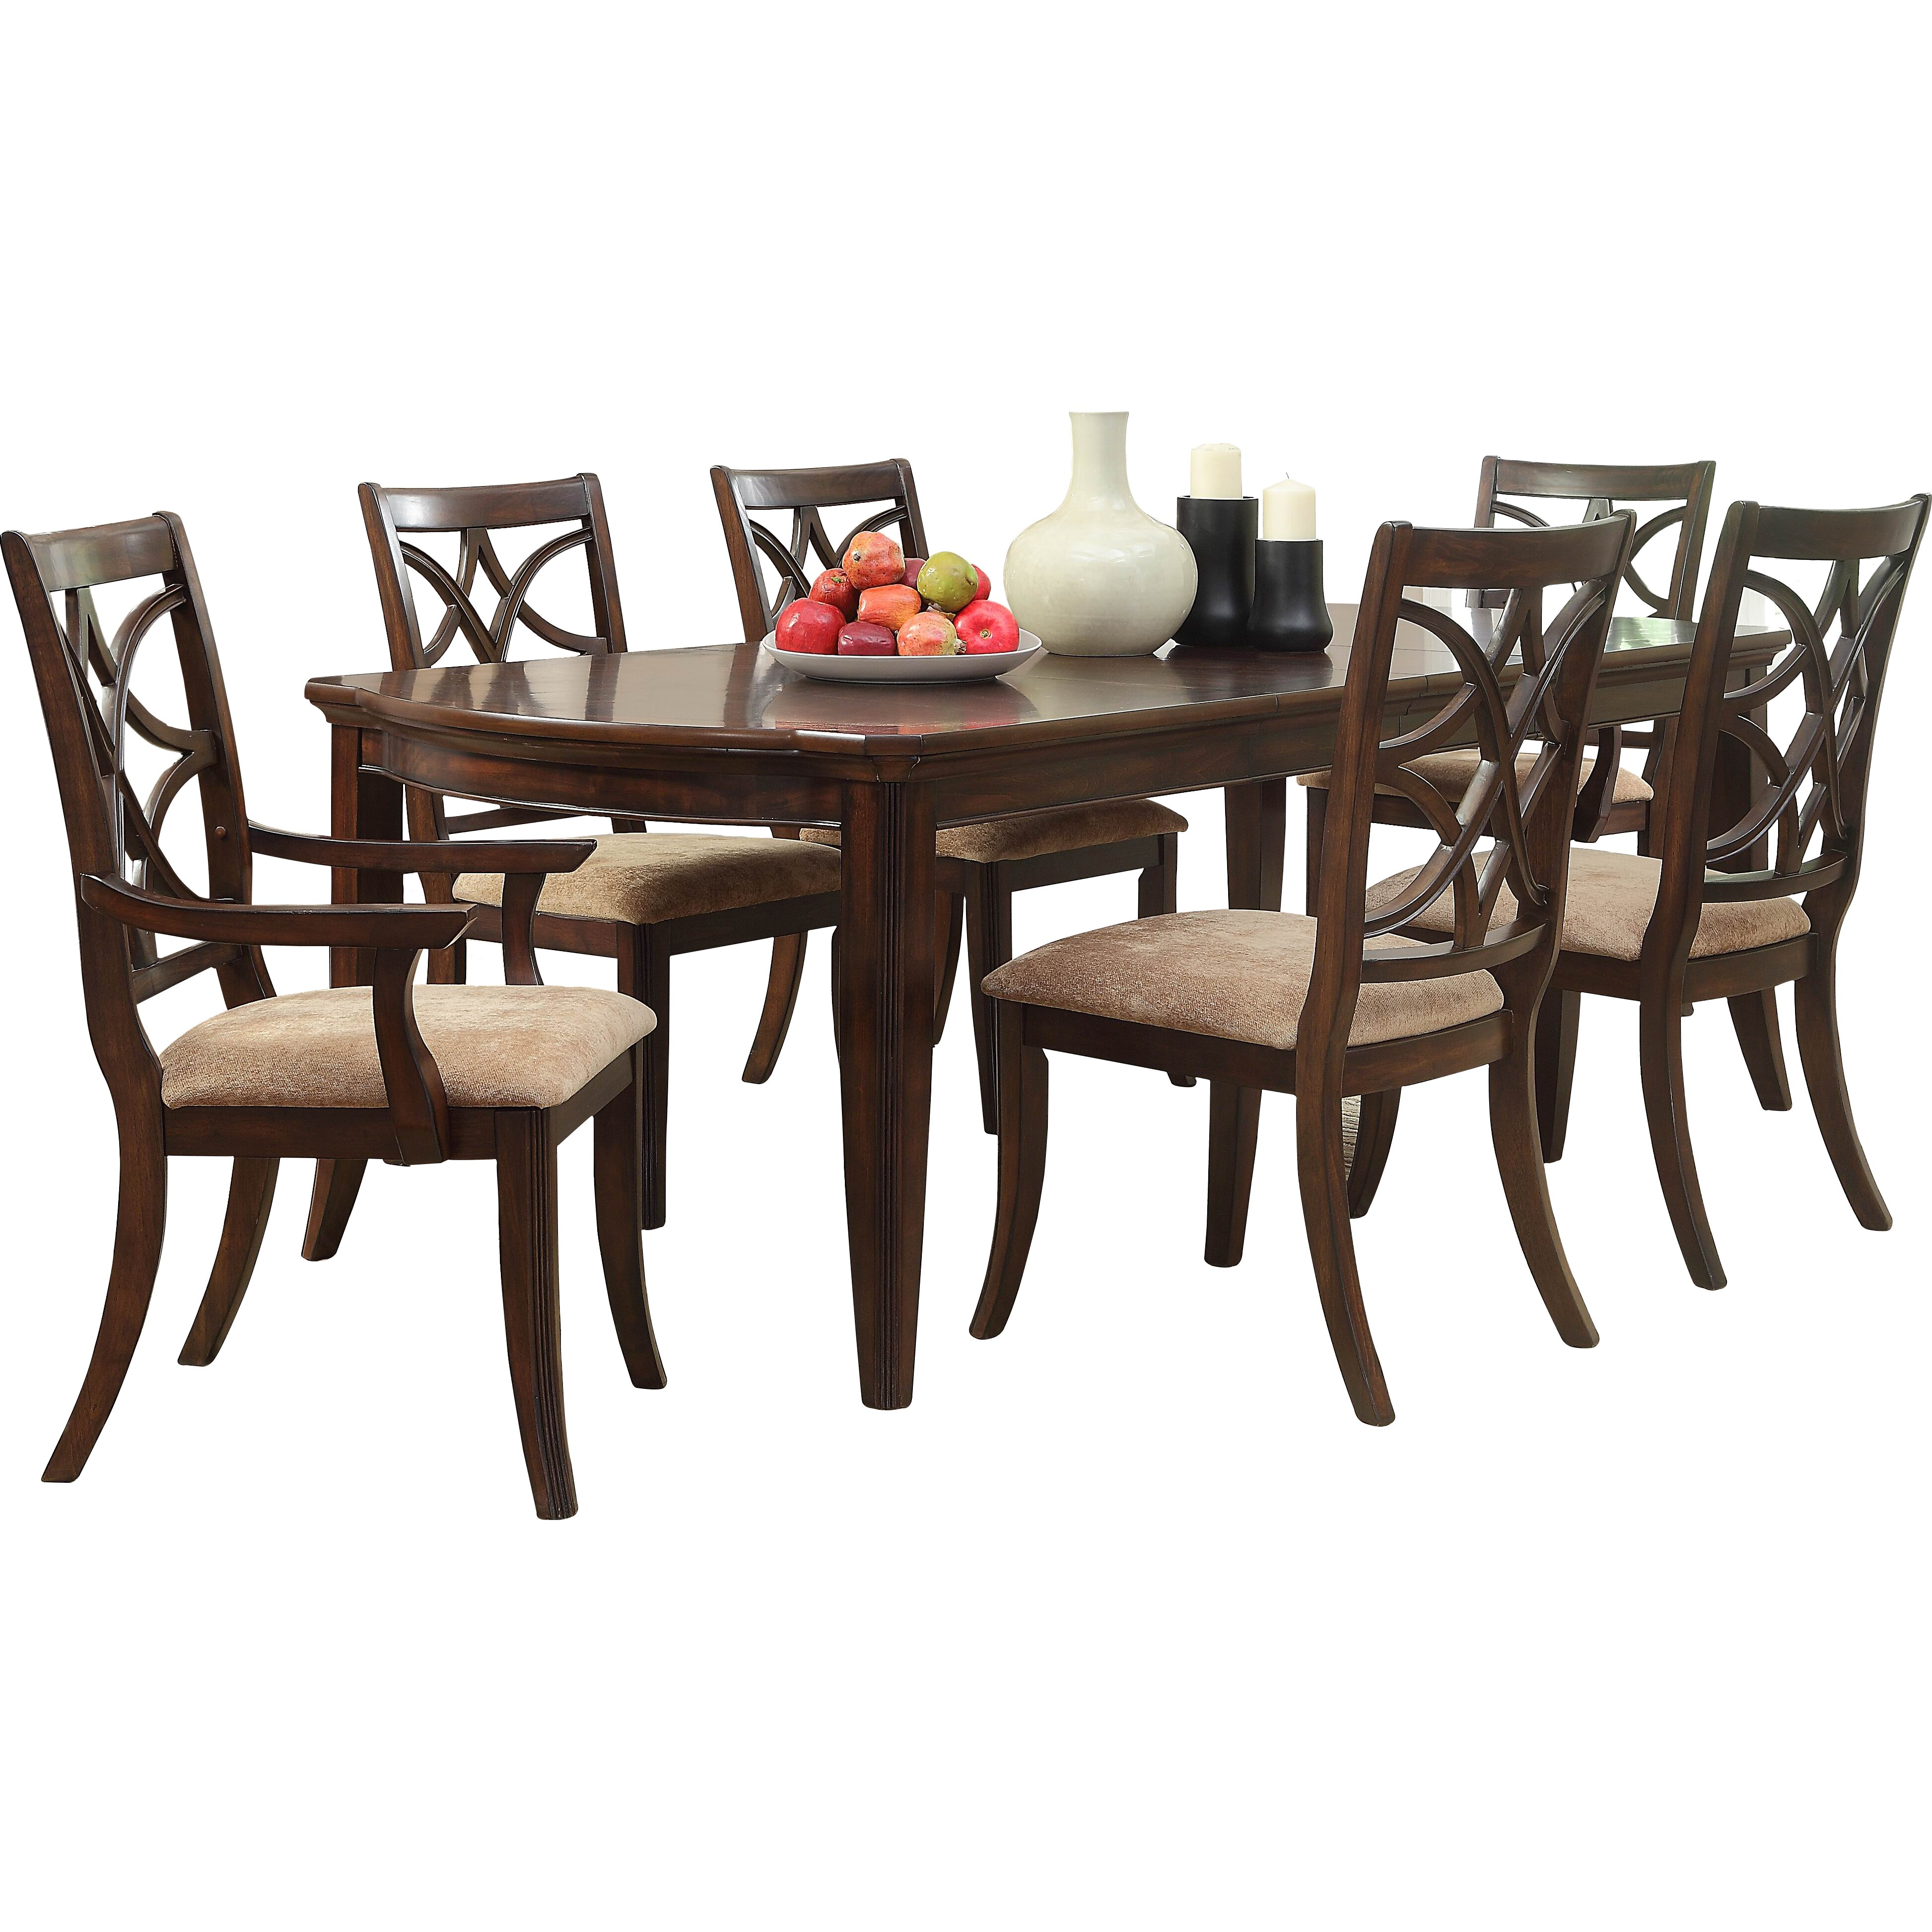 Darby Home Co Kinsman Extendable Dining Table amp Reviews  : Darby Home Co Kinsman Extendable Dining Table DBHC5608 from www.wayfair.com size 3892 x 3892 jpeg 1621kB